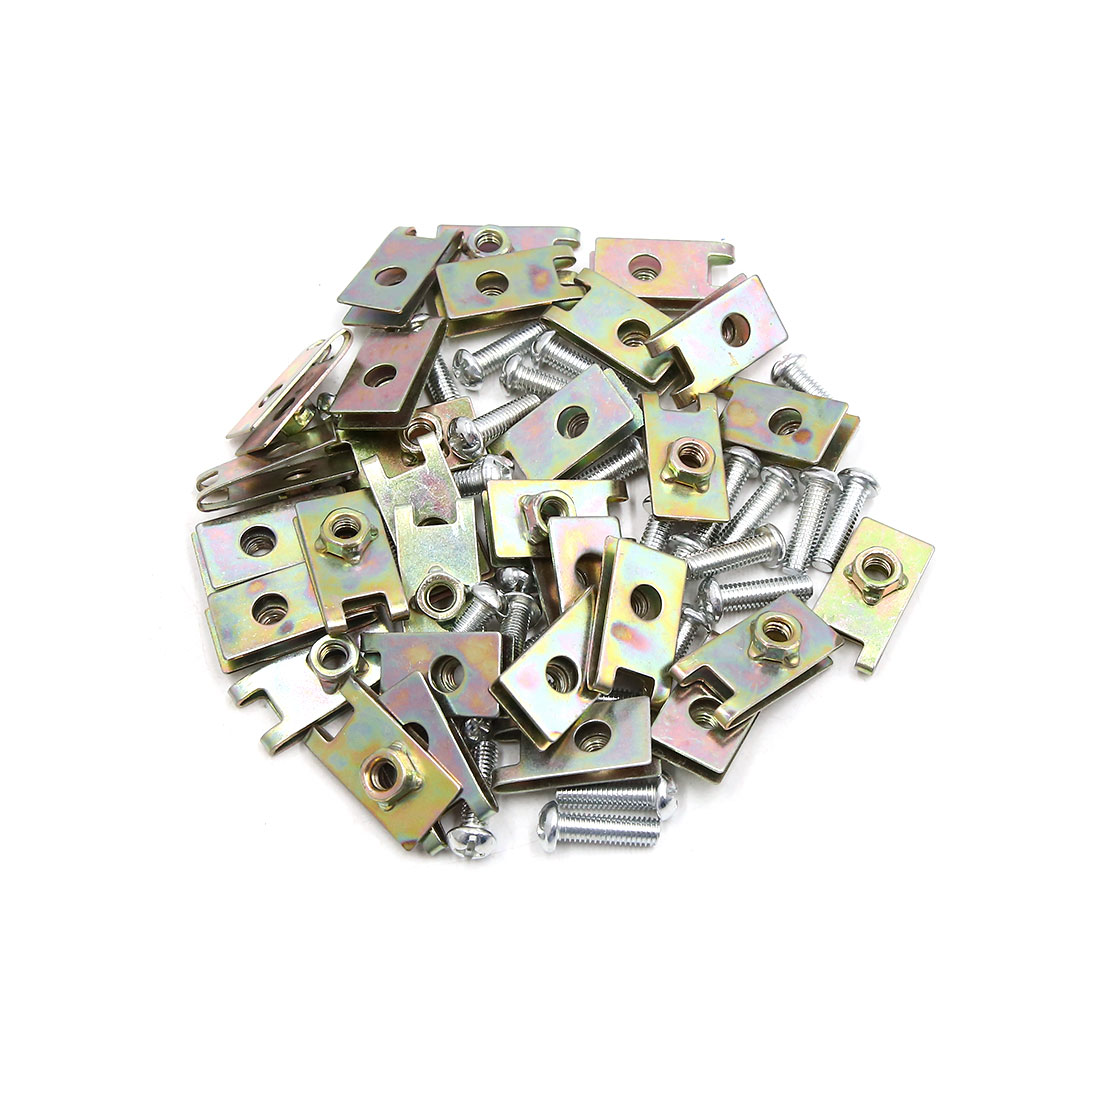 30PCS 6mm Thread Dia Metal License Plate Clips Kit for Motorcycle Car w Screws